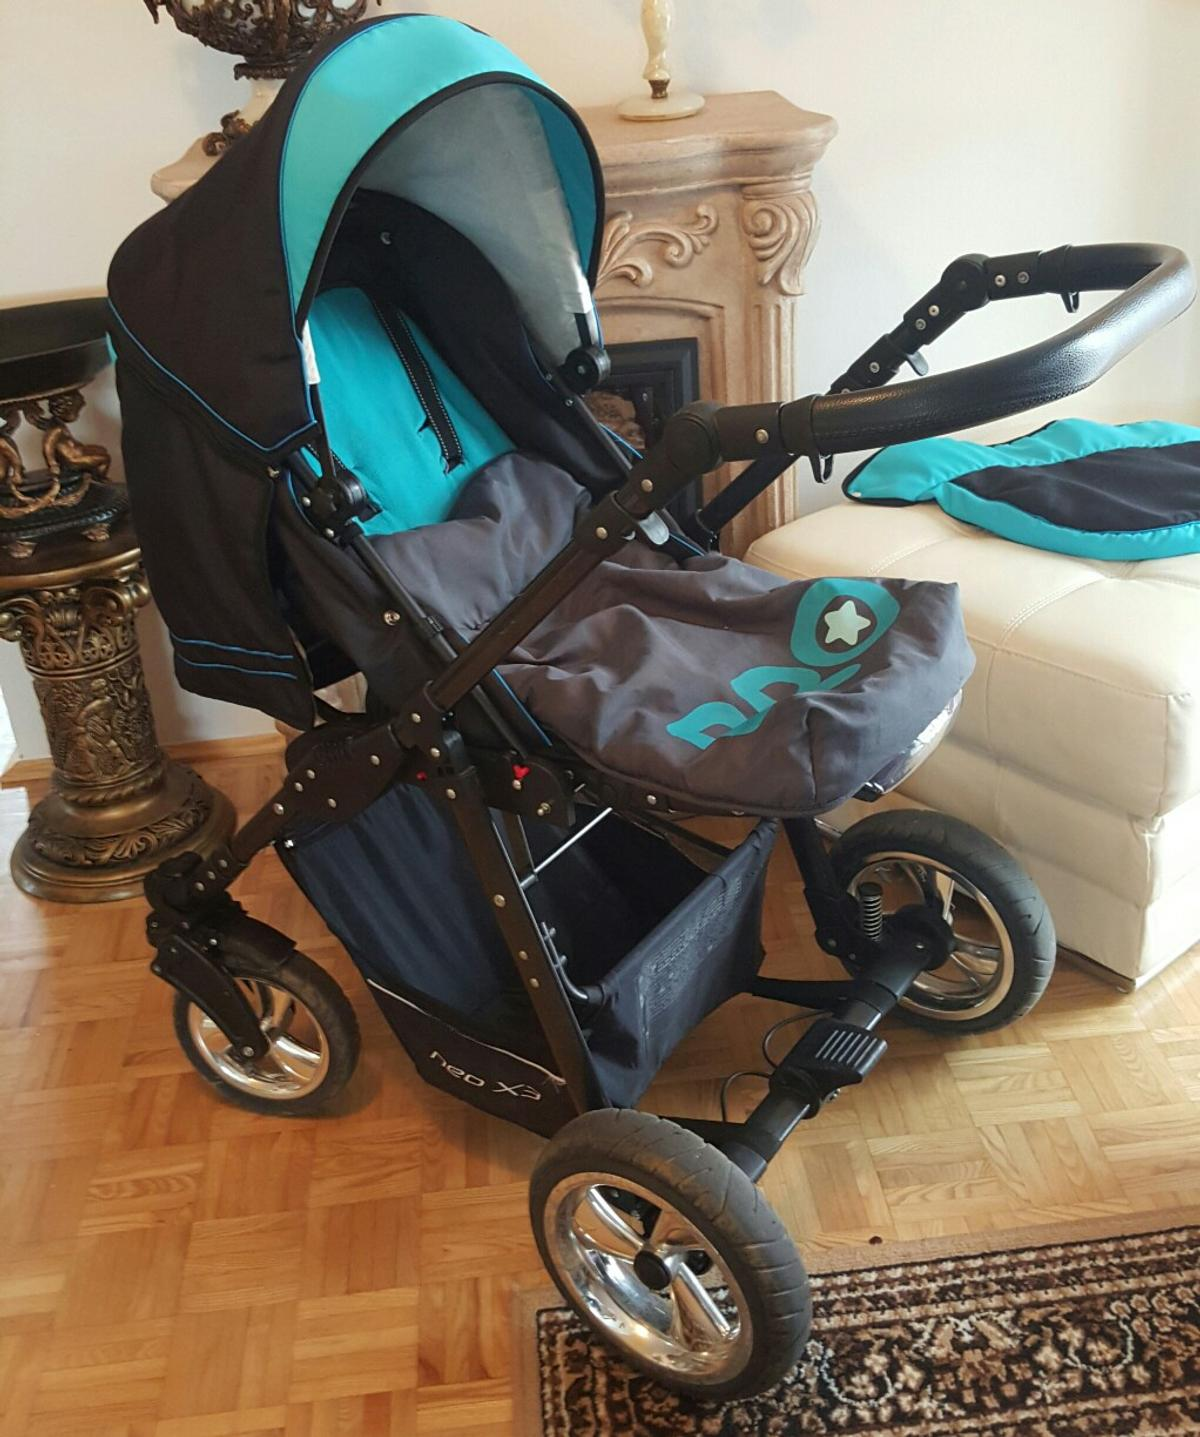 Neo X3 Kinderwagen In 5102 Anthering For 100 00 For Sale Shpock